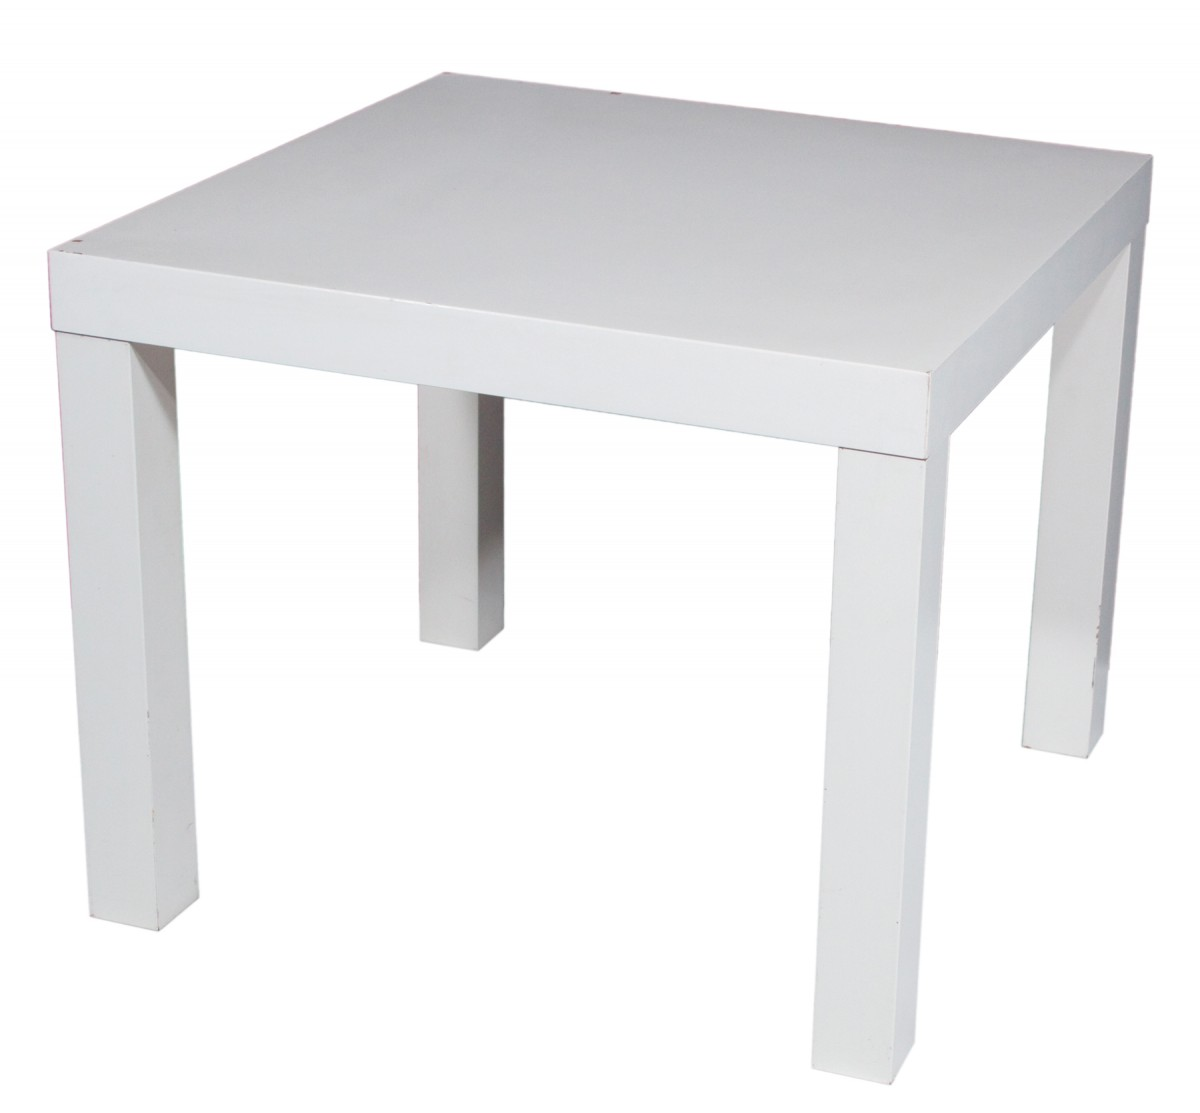 petite table basse blanche id es de d coration int rieure french decor. Black Bedroom Furniture Sets. Home Design Ideas